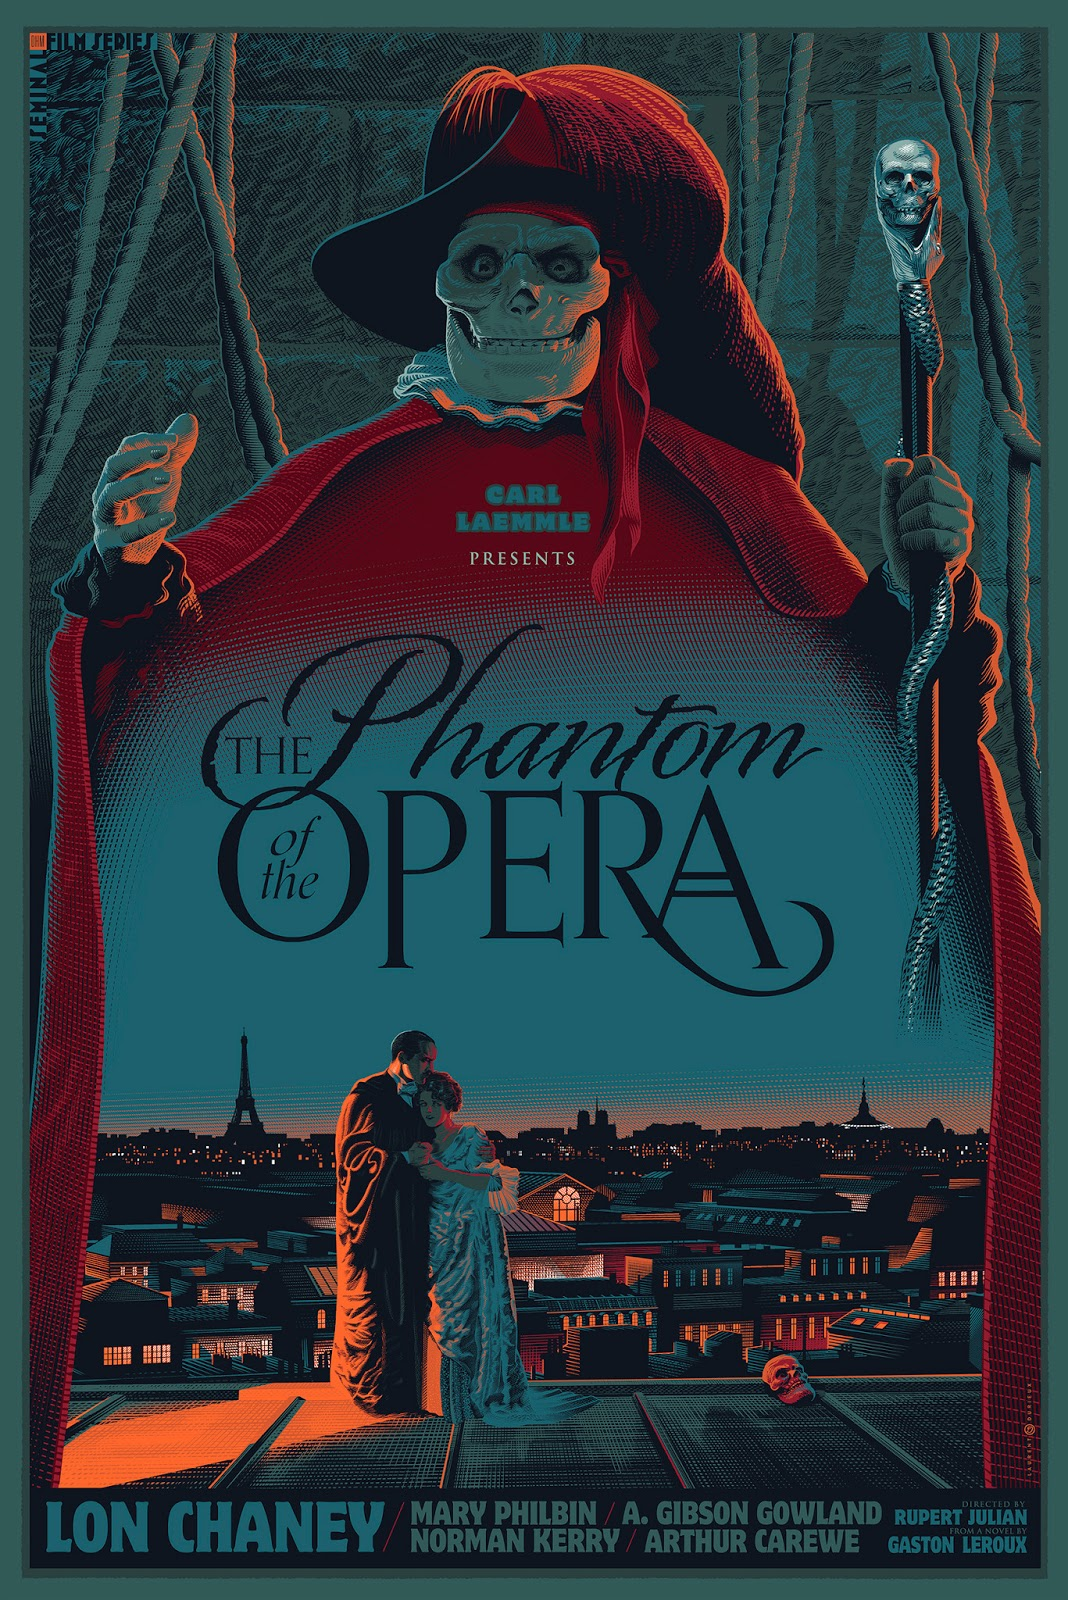 the phantom of the opera 3 essay Phantom of the opera essays: over 180,000 phantom of the opera essays, phantom of the opera term papers, phantom of the opera research paper, book reports 184 990 essays, term and research.